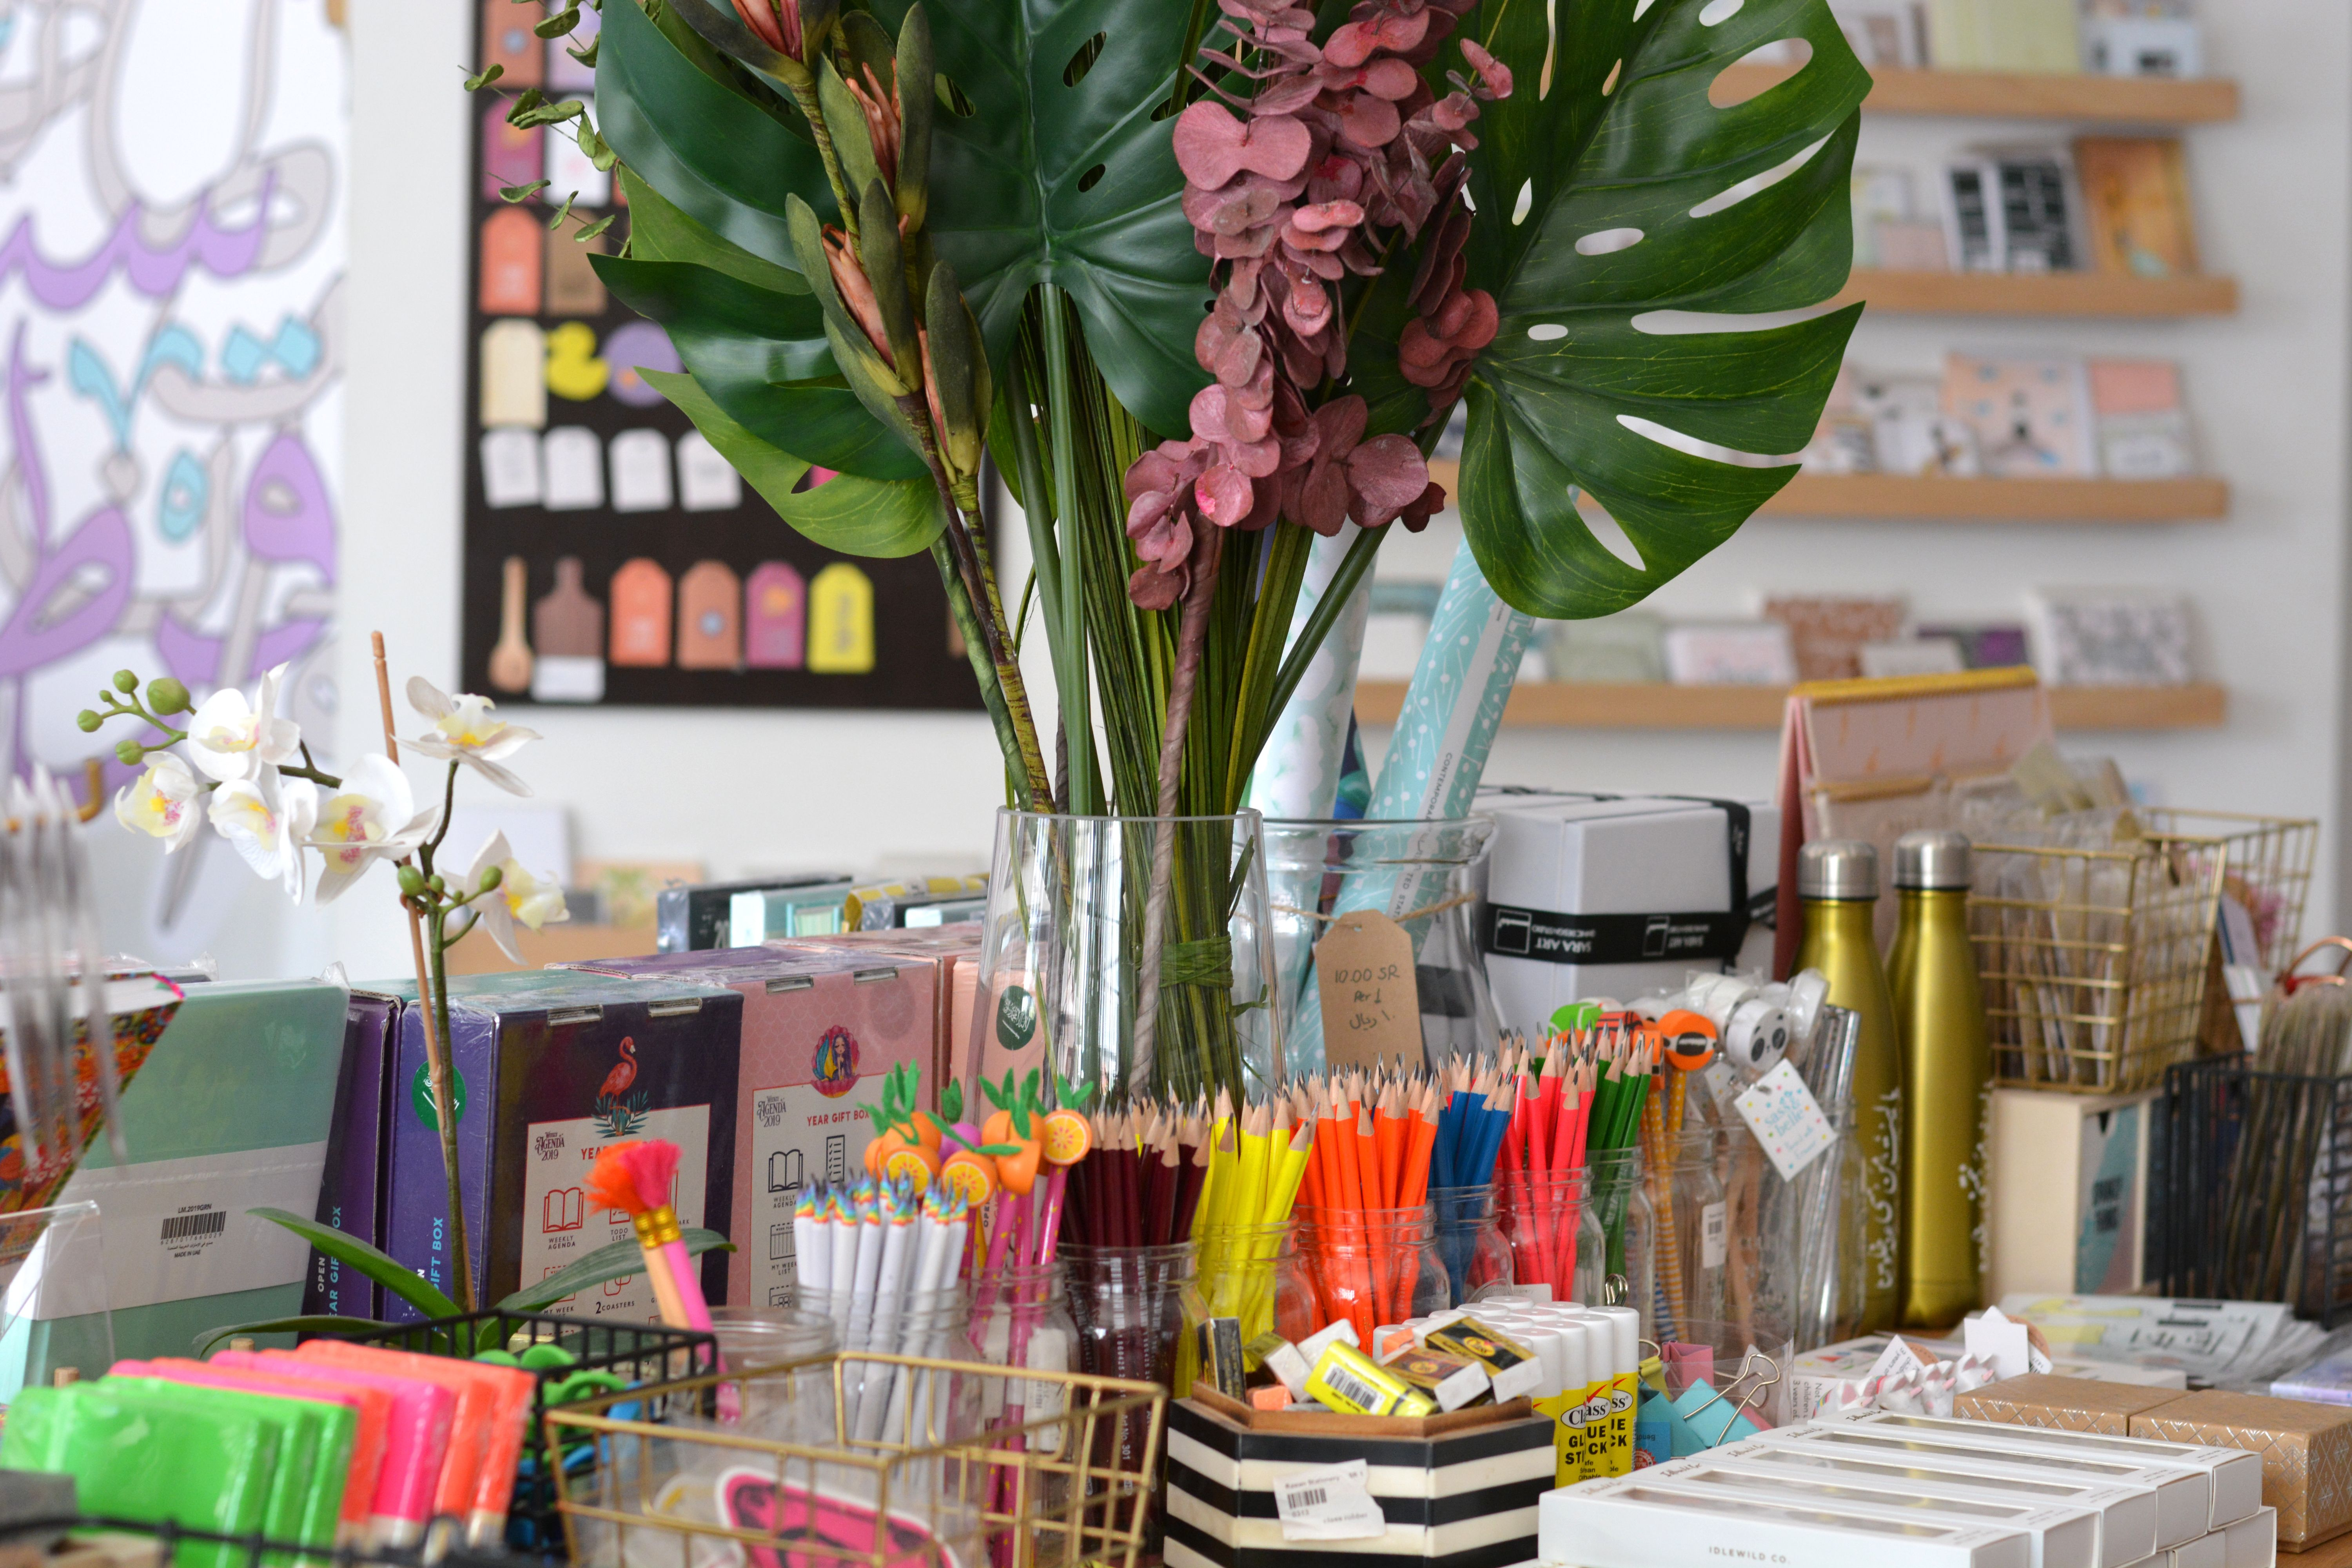 Rawan Stationery Aims To Promote The Arabic Language By Attracting The Products Of Arab Artists And International Gifts Stationery Collection Stationery Store